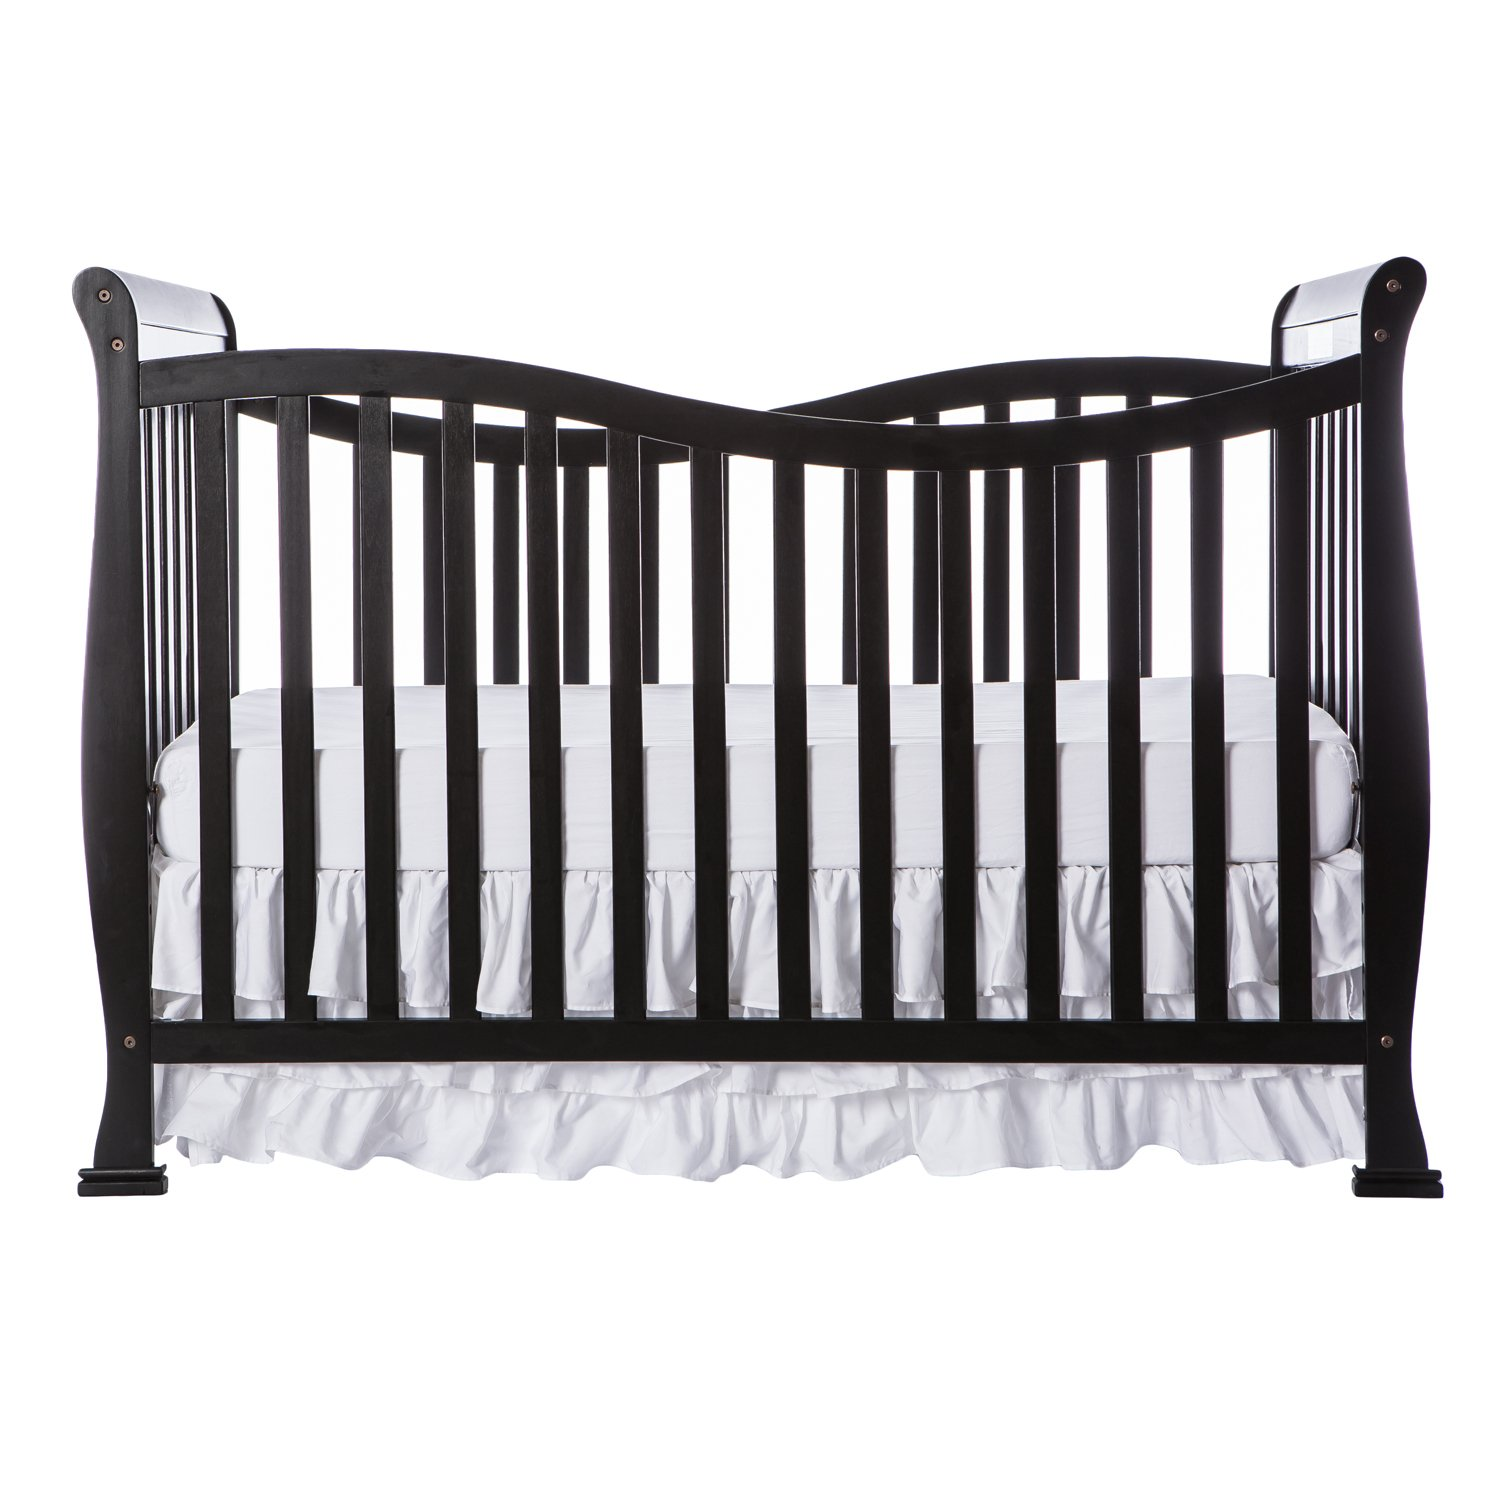 Crib and stroller for sale philippines - Amazon Com Dream On Me Violet 7 In 1 Convertible Life Style Crib Black Baby